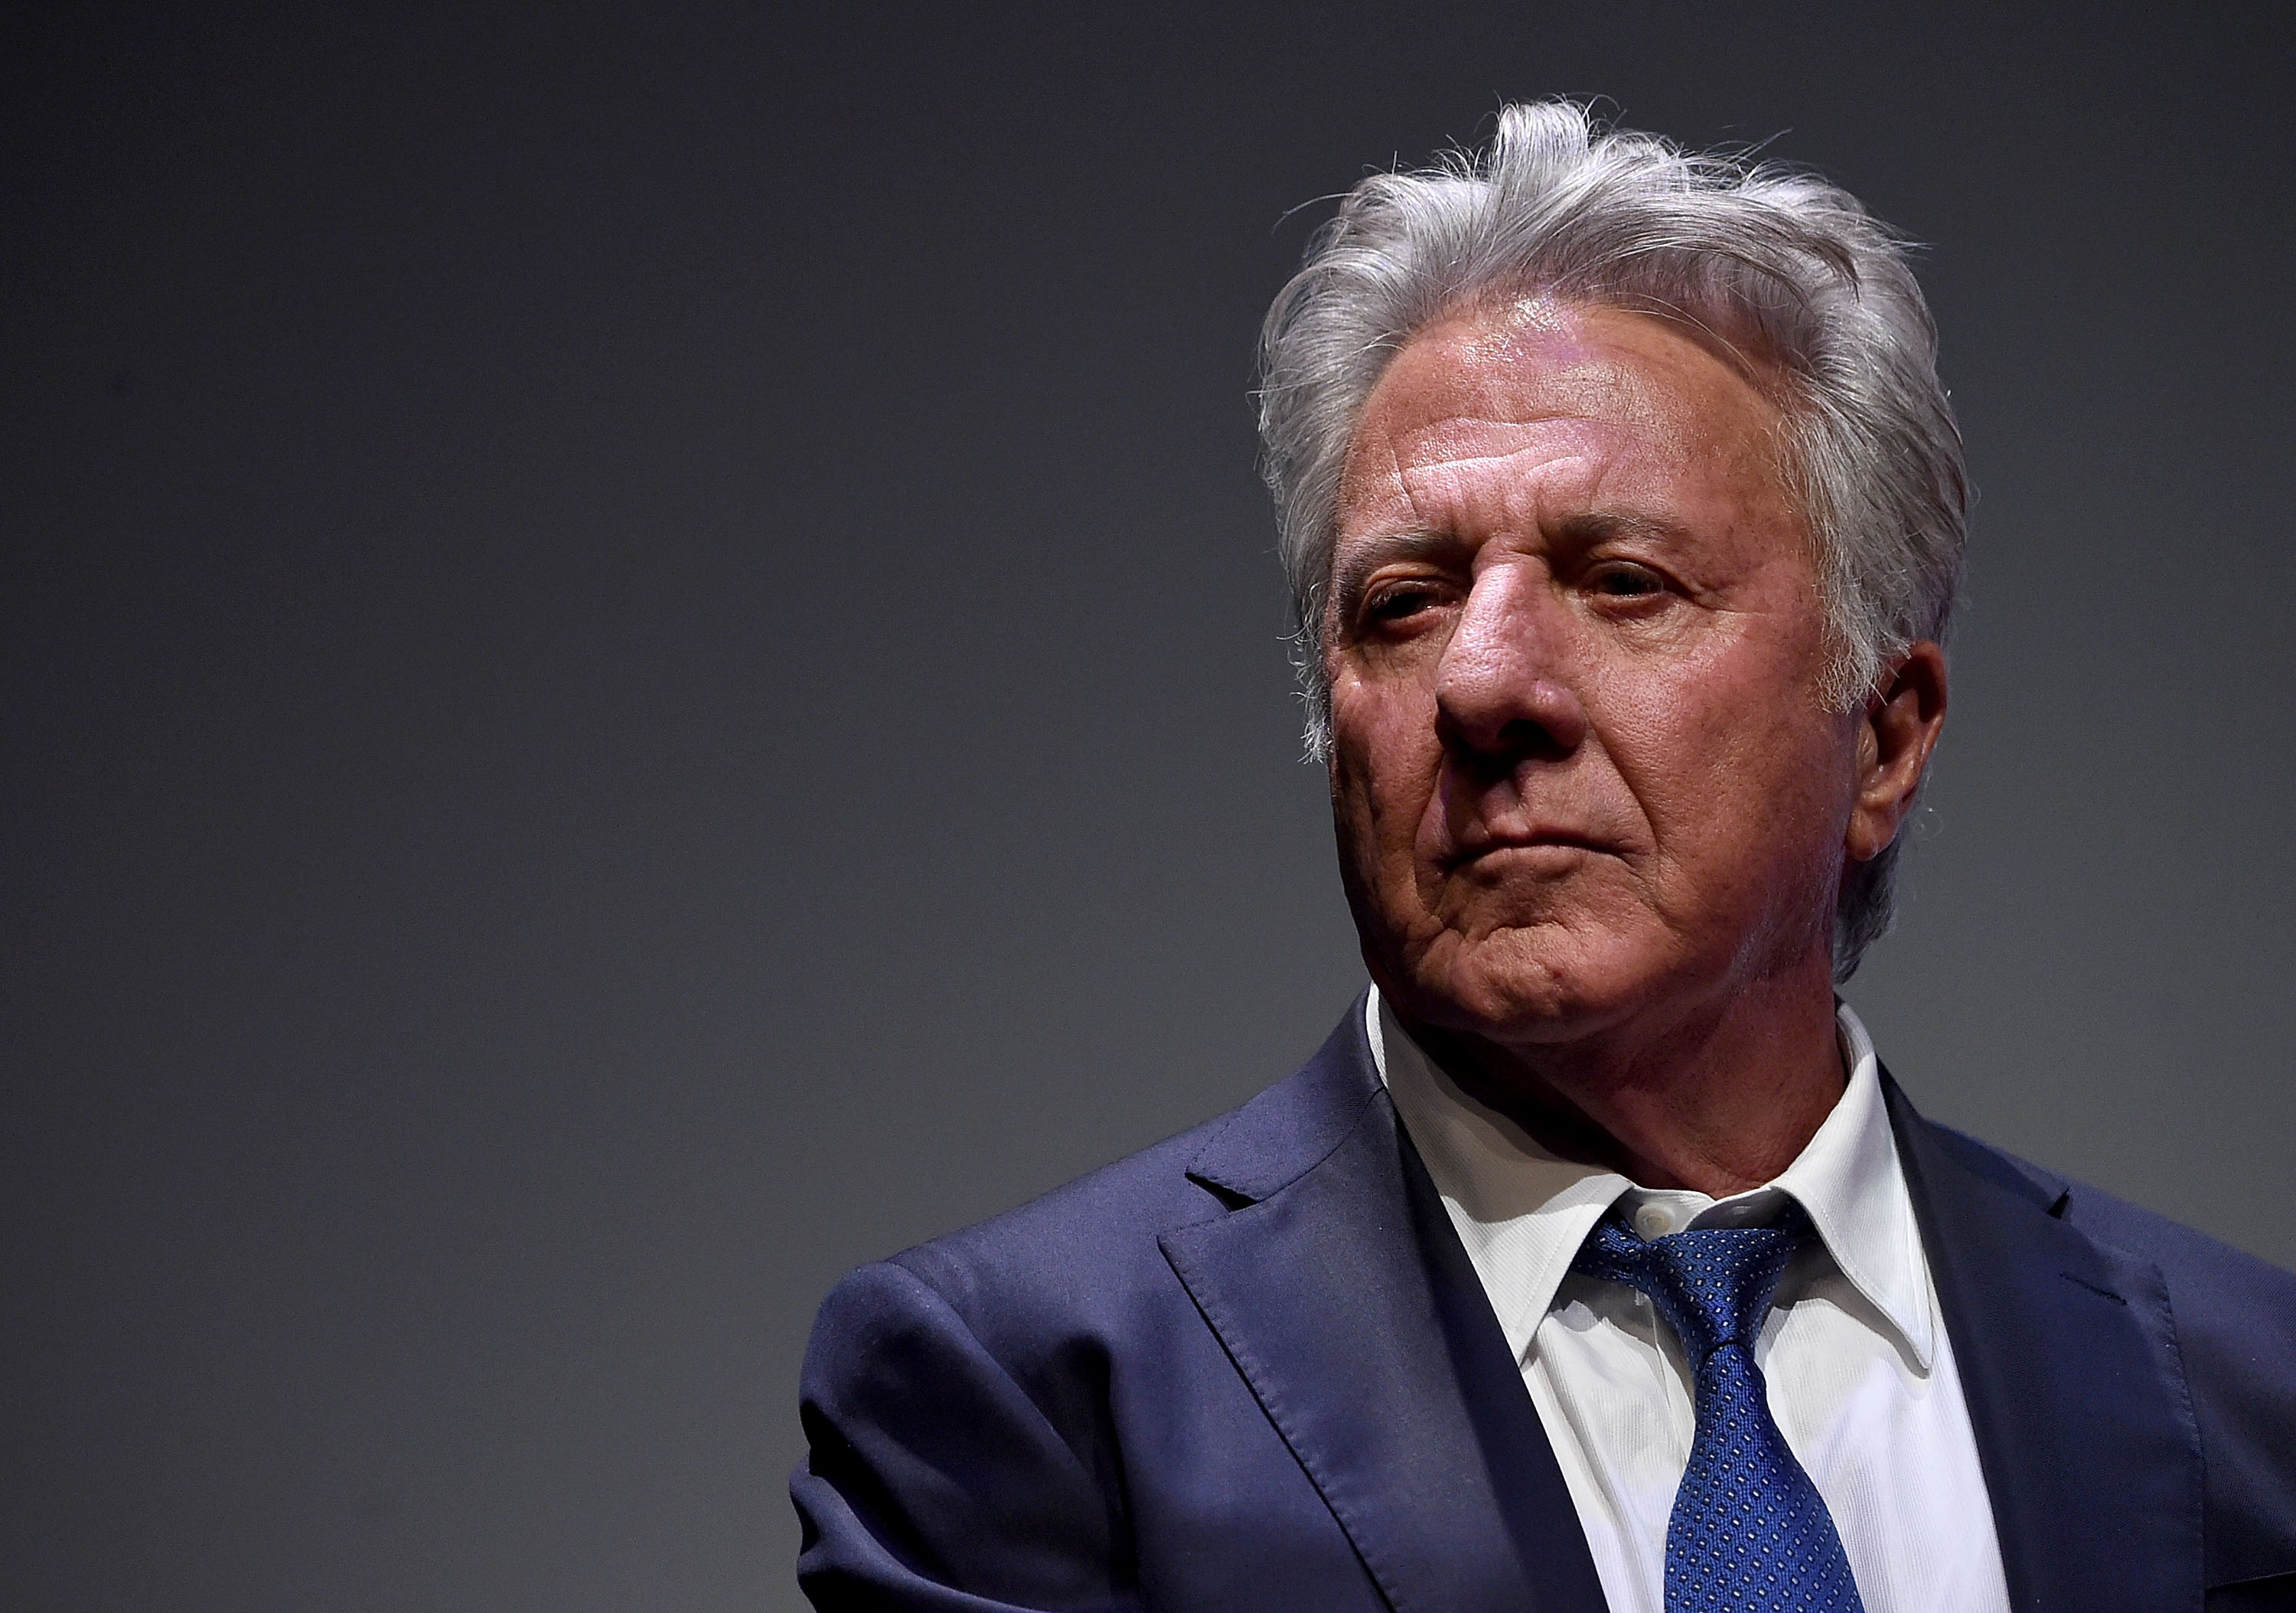 """Dustin Hoffman attends the 55th New York Film Festival - """"Meyerowitz Stories"""" at Alice Tully Hall on October 1, 2017, in New York City. 